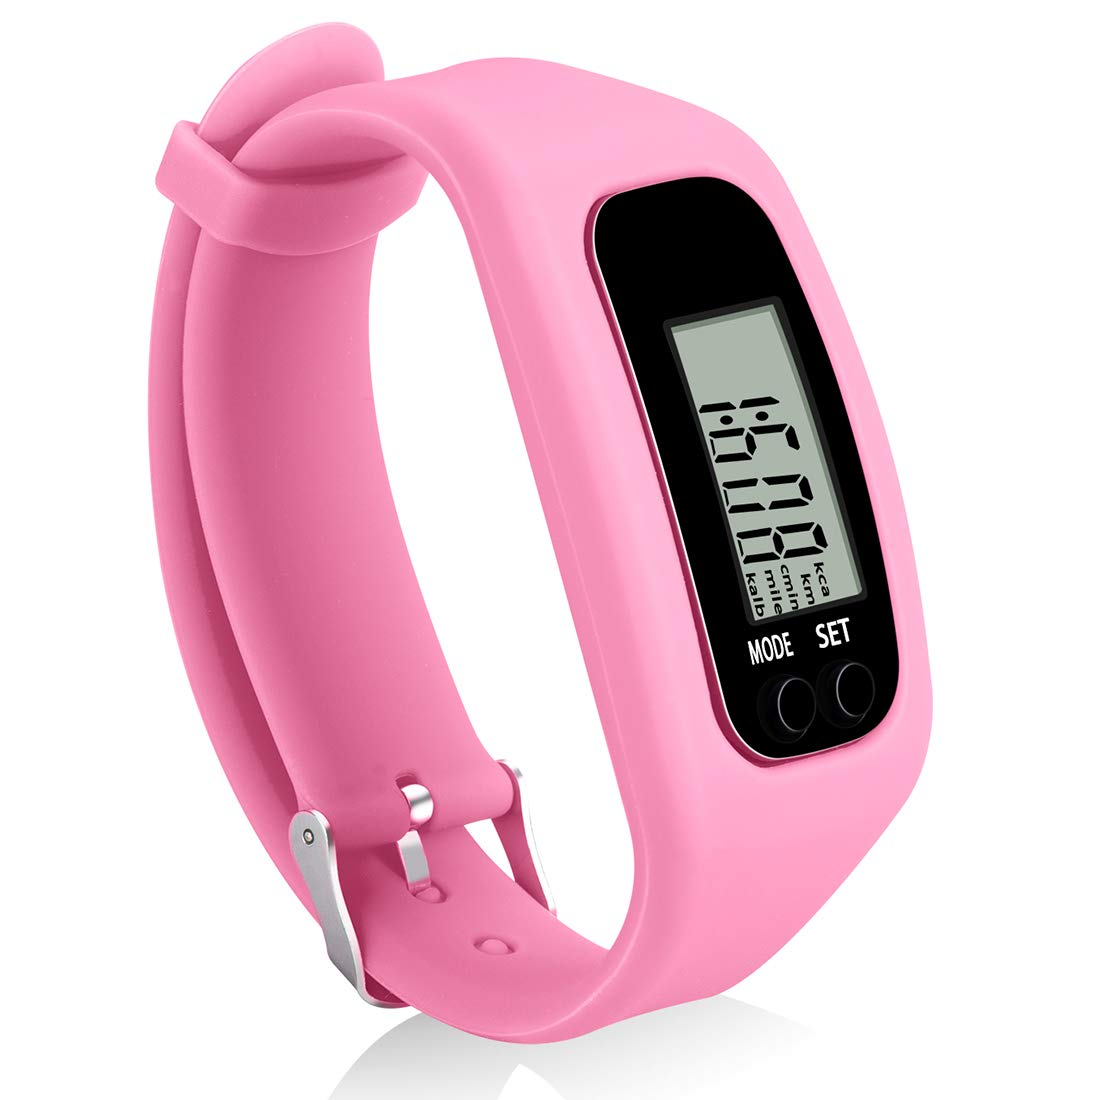 Bomxy Fitness Operation Pedometer Counting